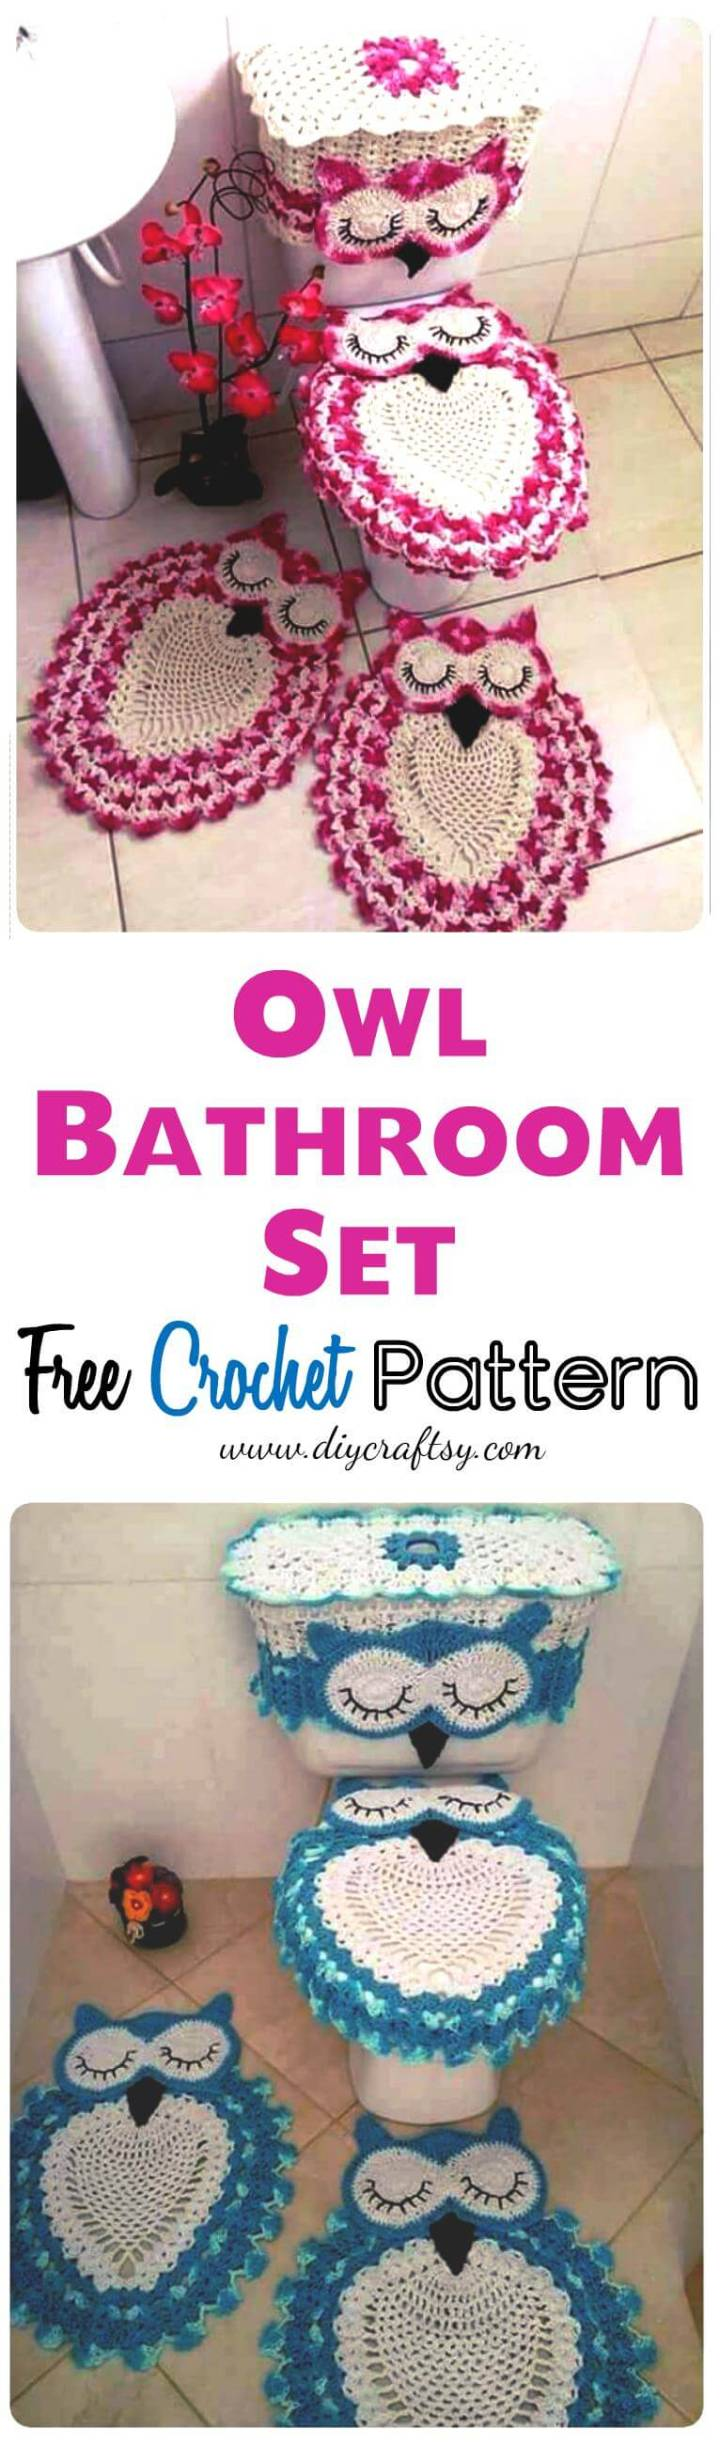 Owl Bathroom Set - Free Crochet Pattern